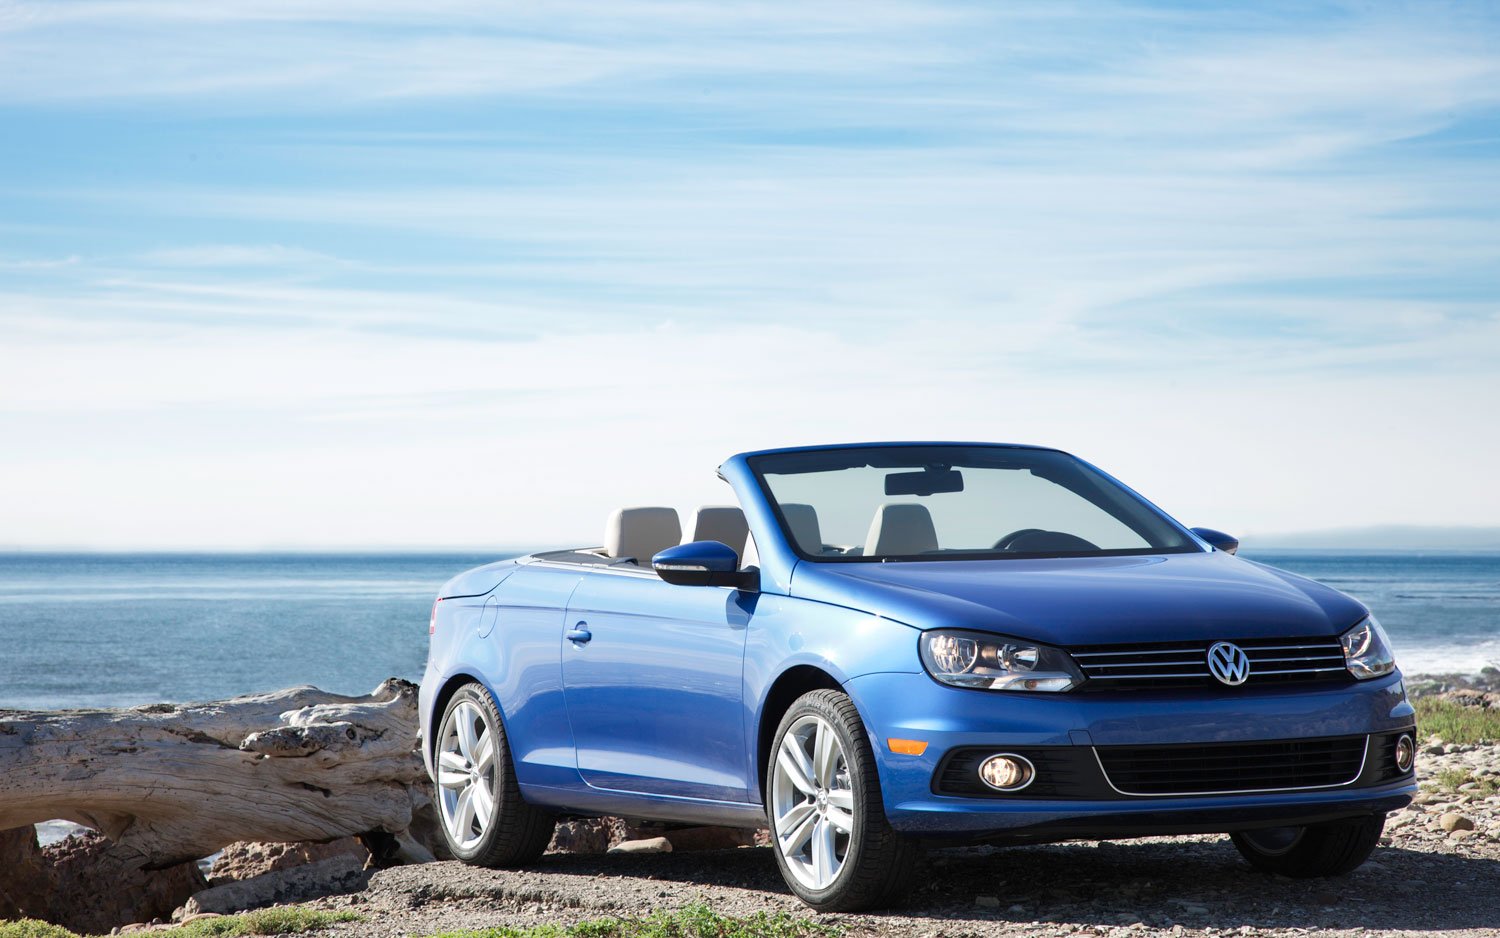 2012 Volkswagen Eos Front Right Side View Parked